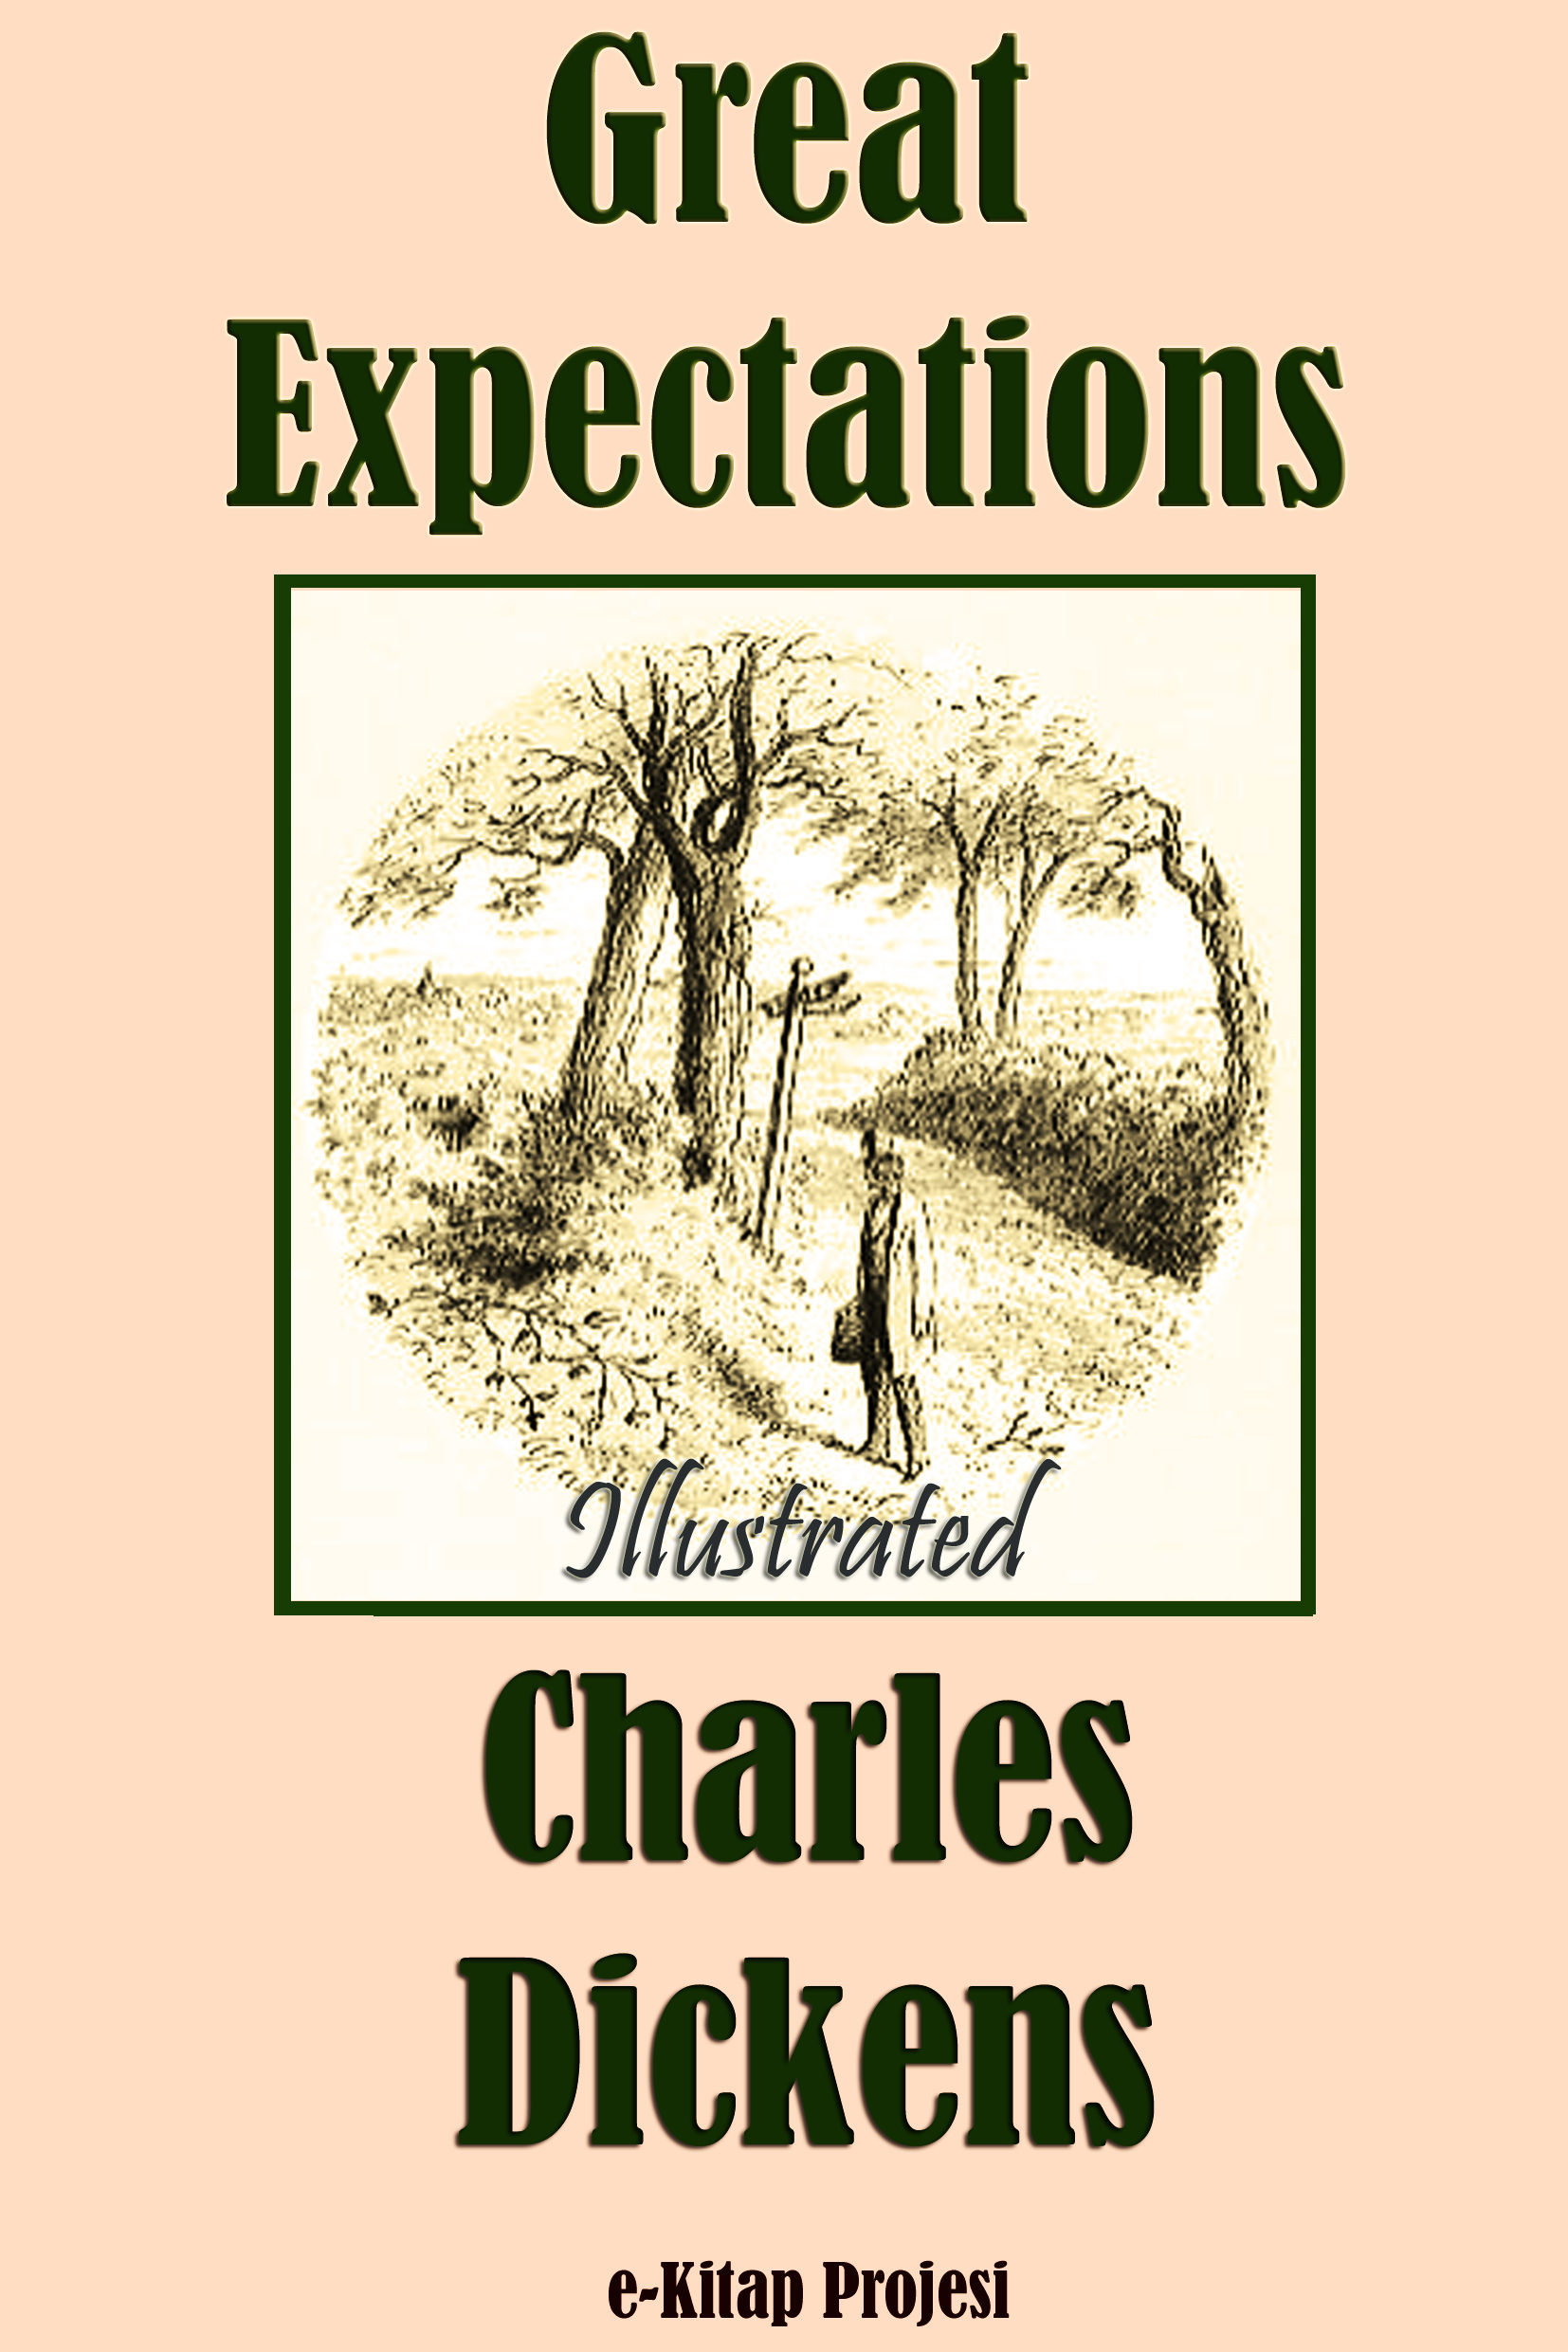 Great epub expectations dickens charles